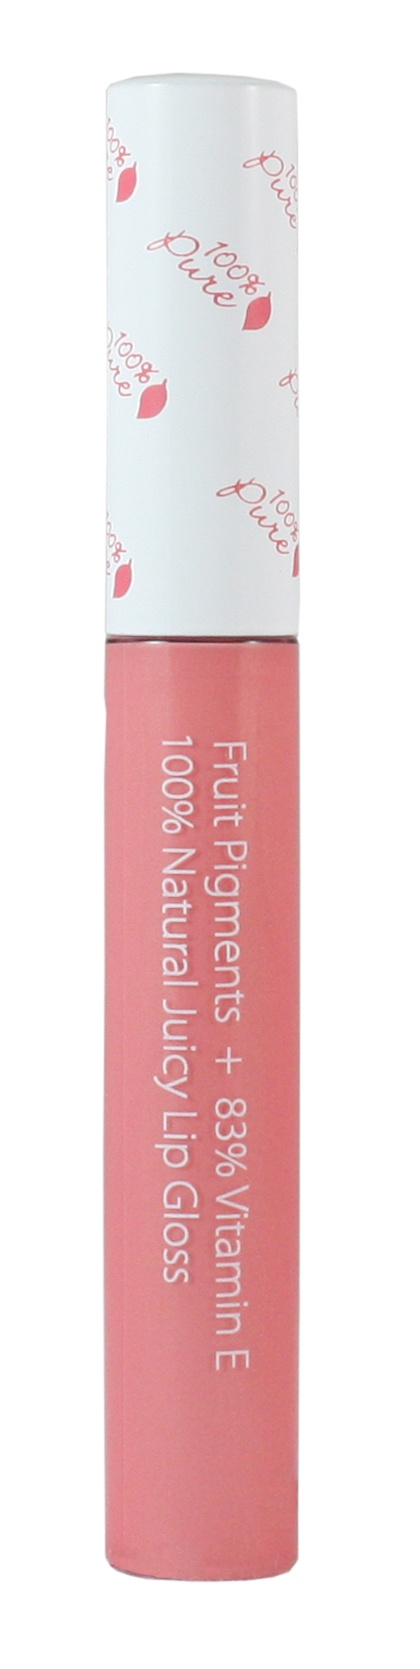 Pink Peach lip gloss: Peaches Lips, Lips Gloss, Enhancer Lips, Crowns Beauty, Makeup Body Products, Beauty Things, Green Products, Animal Test, Nature Makeup Body